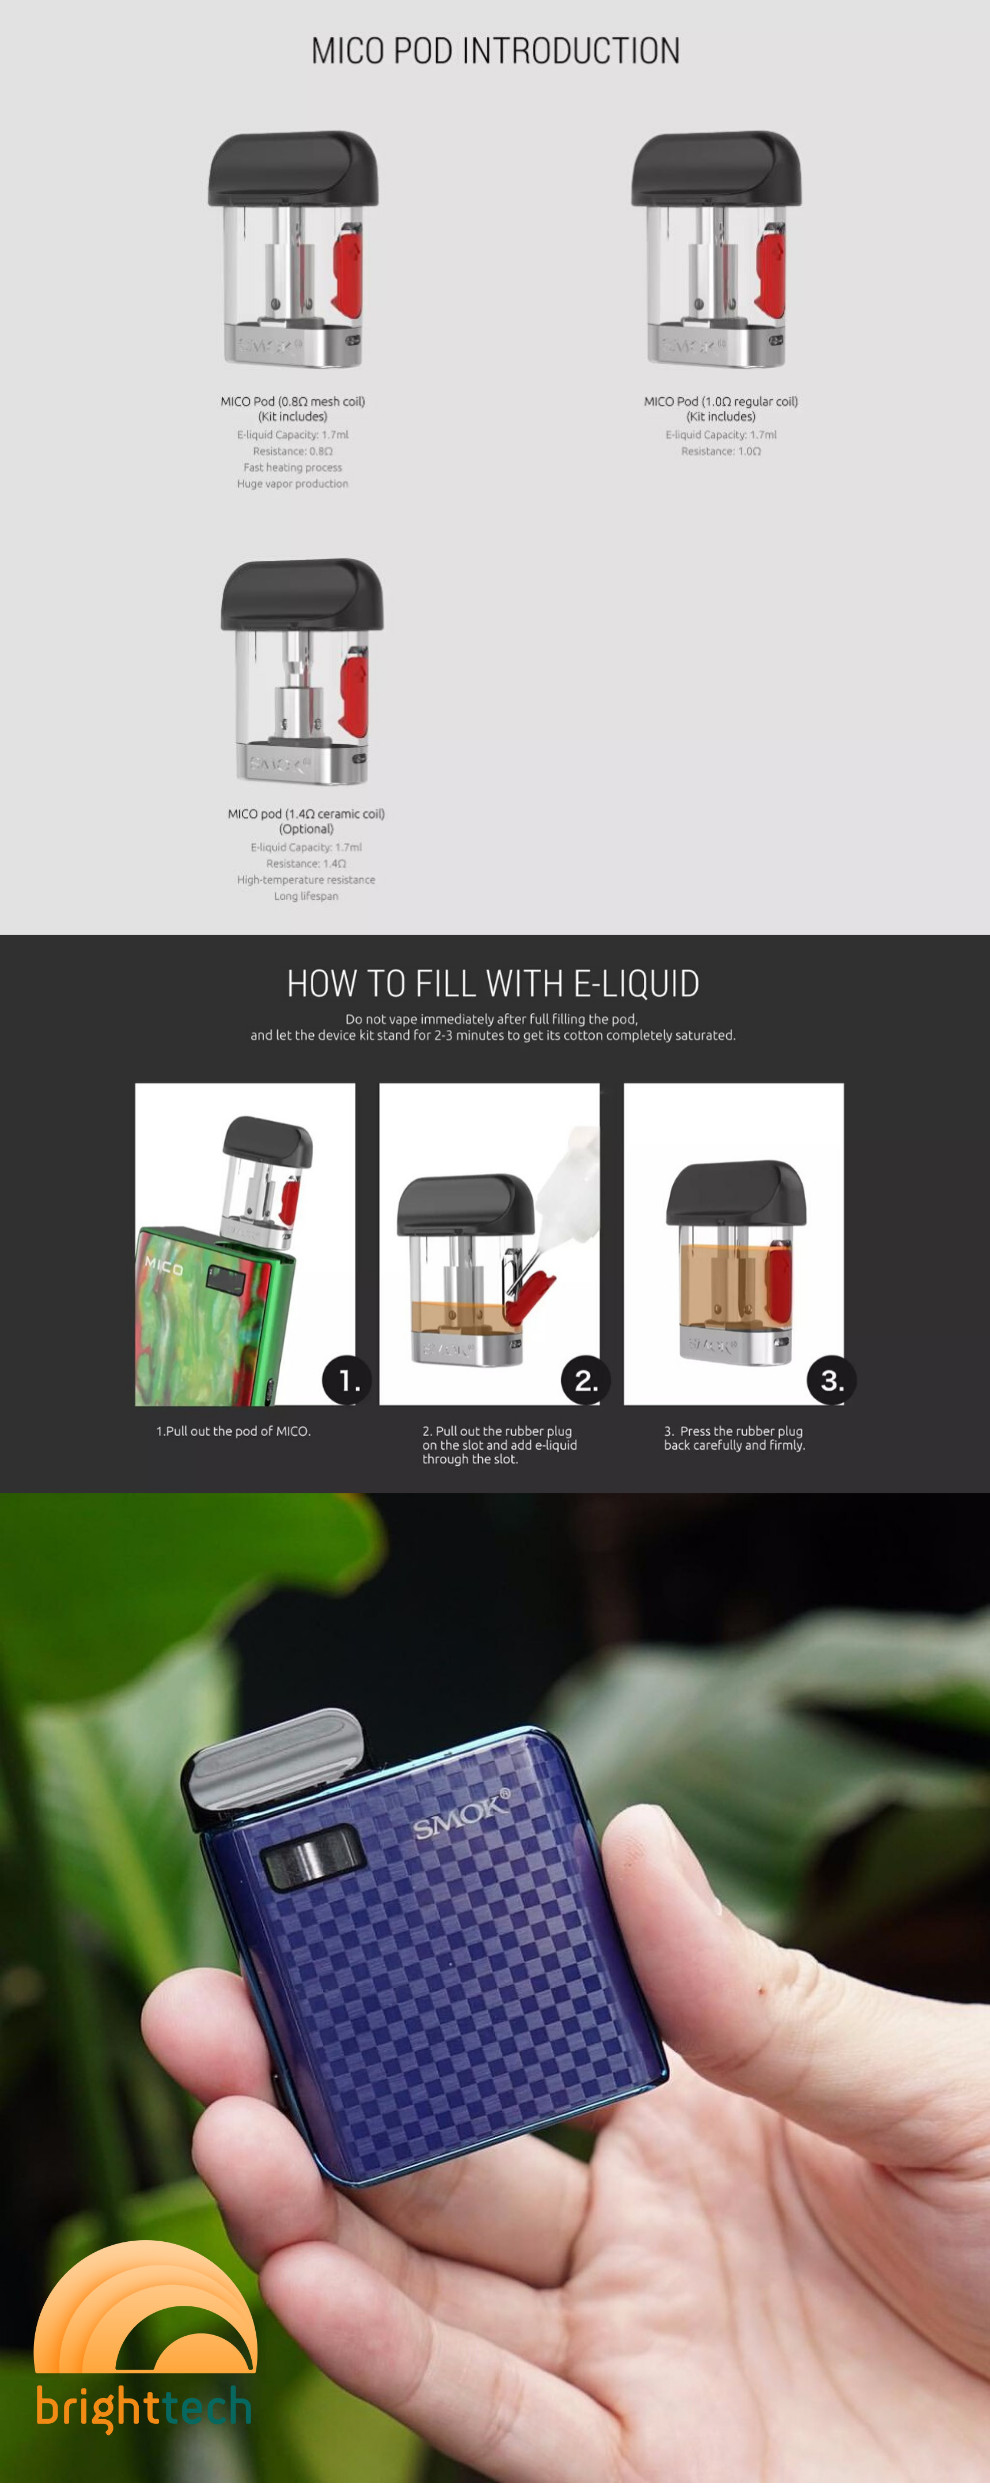 Pack of 3 pieces SMOK Mico Pod Cartridge 1.4Ω or 1.0Ω -description